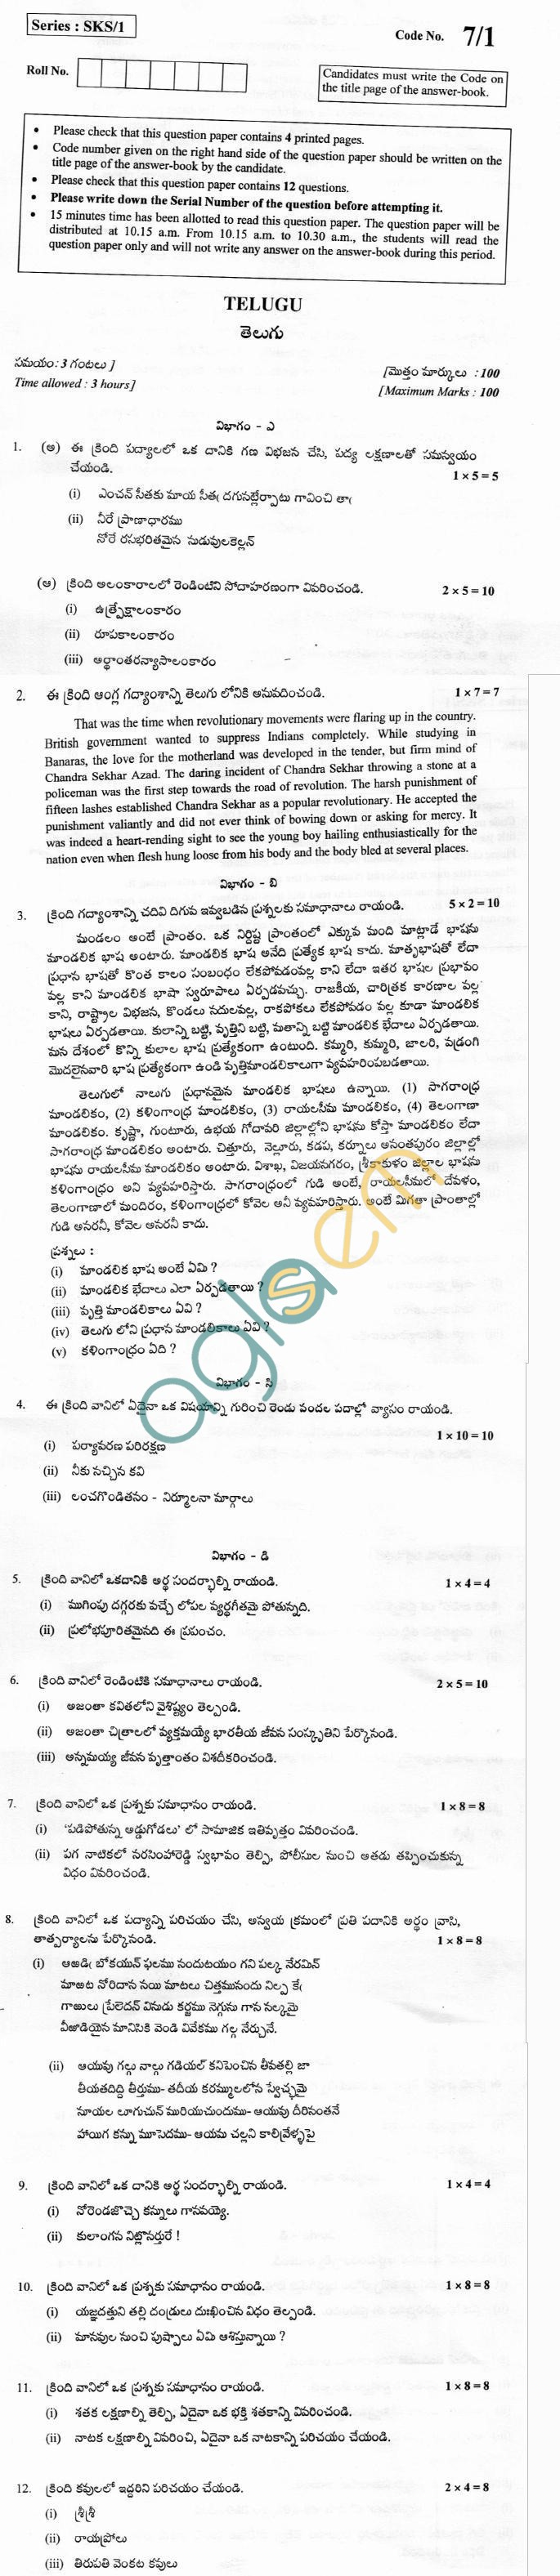 CBSE Board Exam 2013 Class XII Question Paper - Telugu